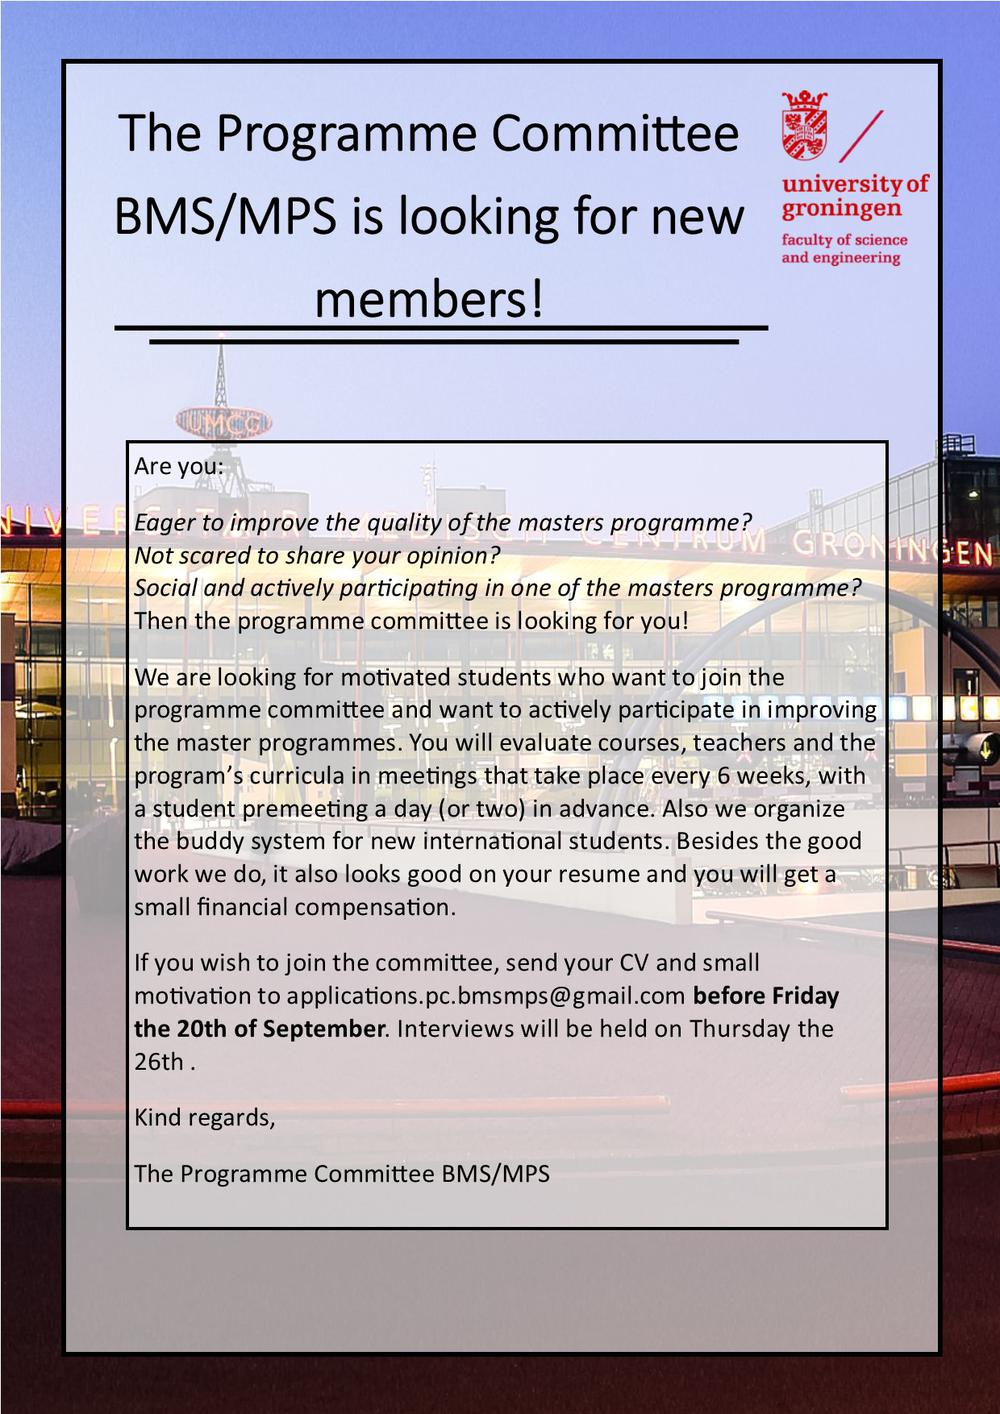 The Master Programme Committee BMS/MPS wants you!